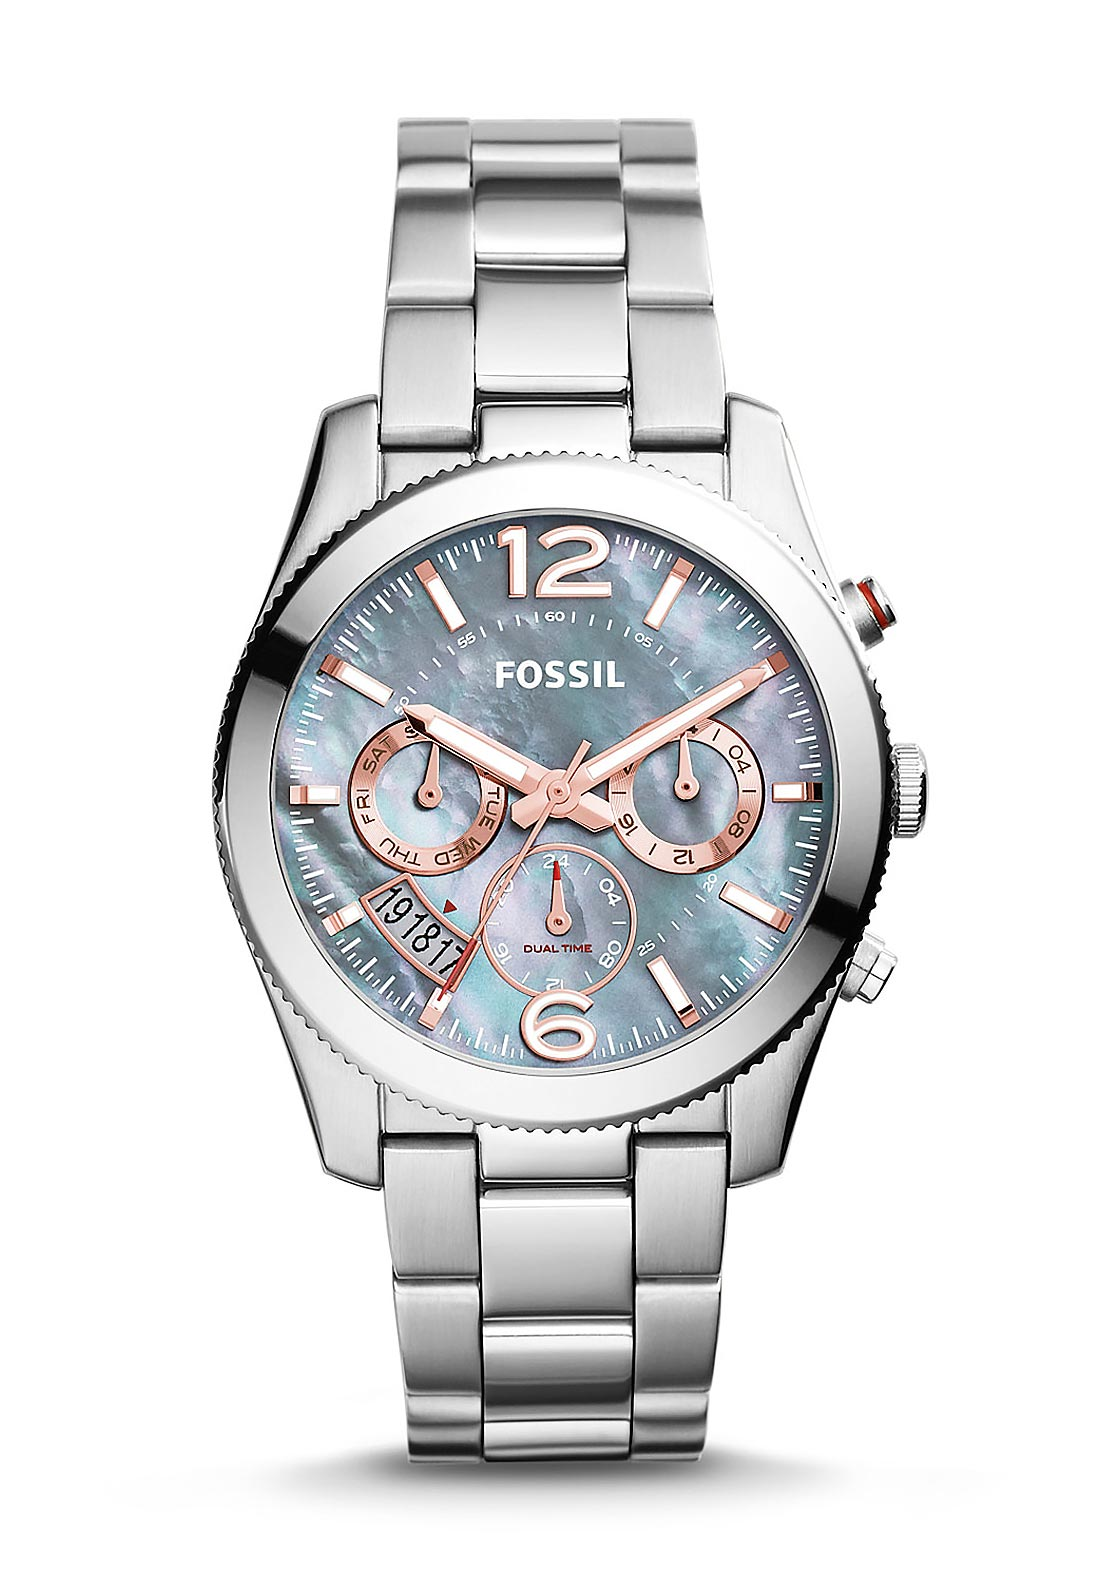 Fossil Womens Perfect Boyfriend Multifunction Stainless Steel Watch, Silver & Rose Gold